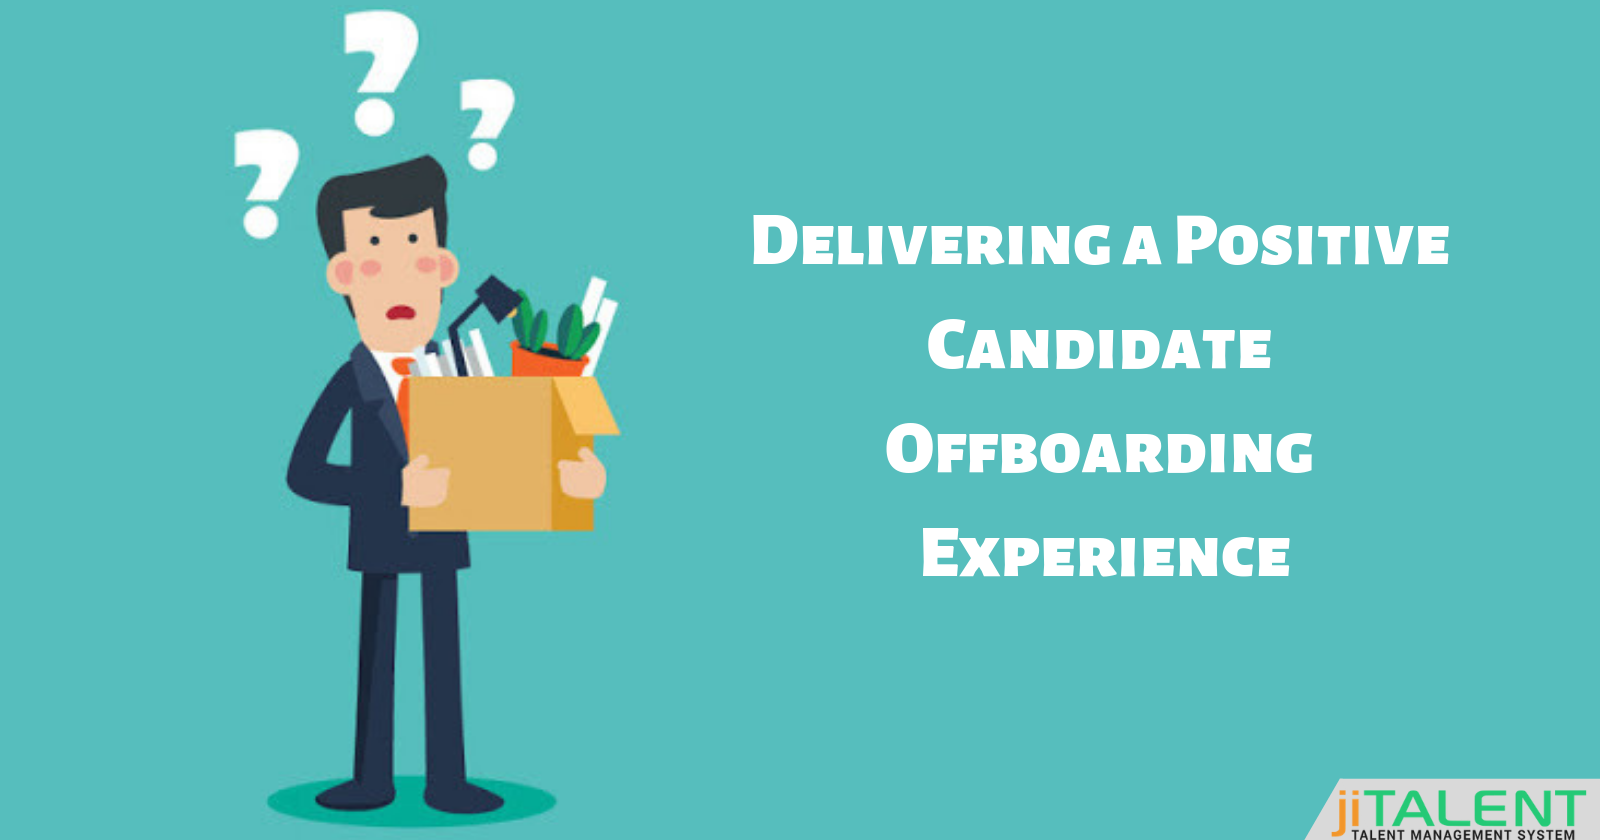 Perks of Positive Candidate Offboarding Experience